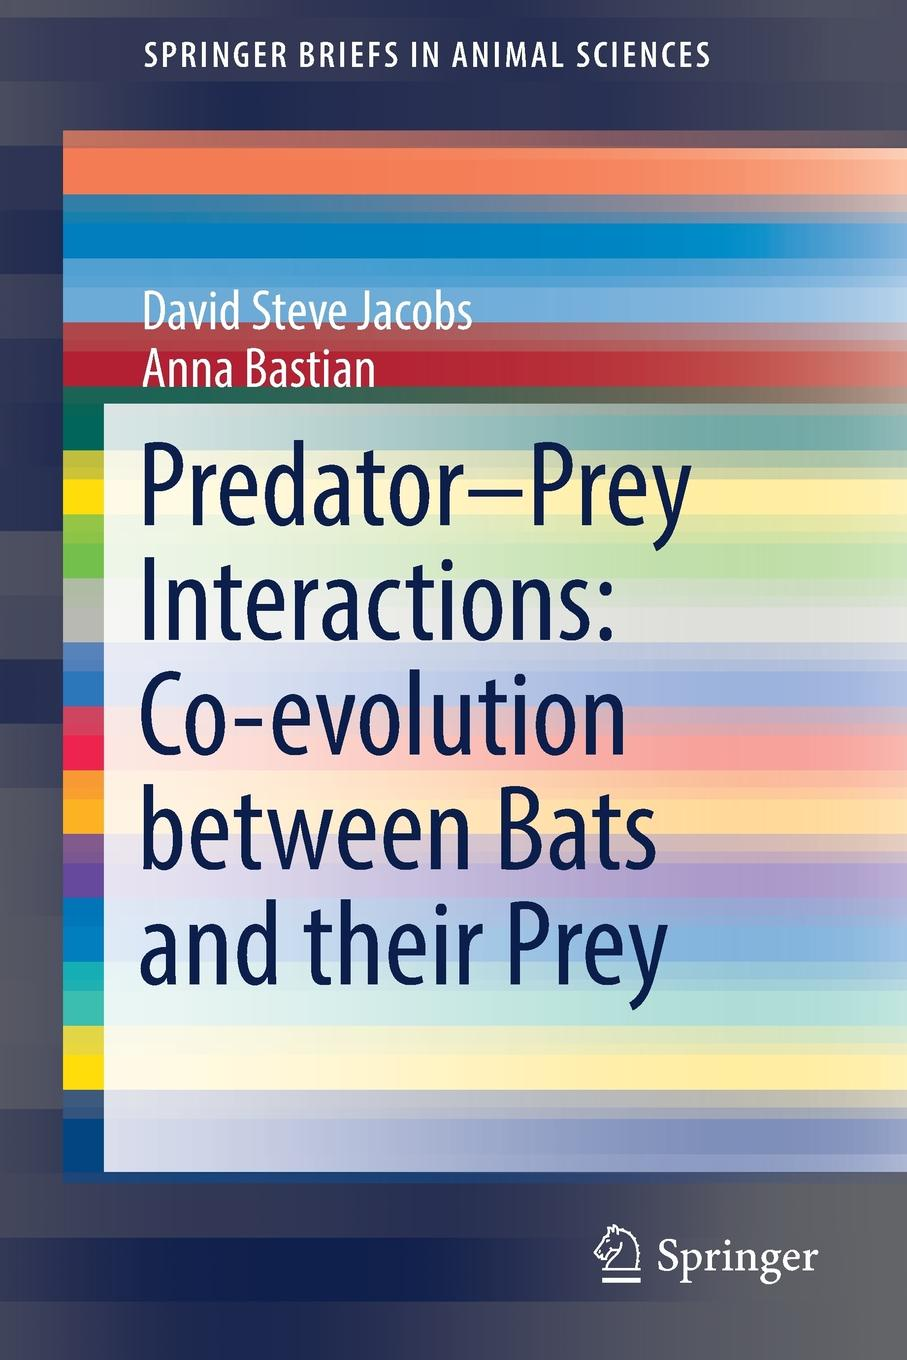 David Steve Jacobs, Anna Bastian Predator-Prey Interactions. Co-evolution between Bats and Their Prey rachel vincent prey